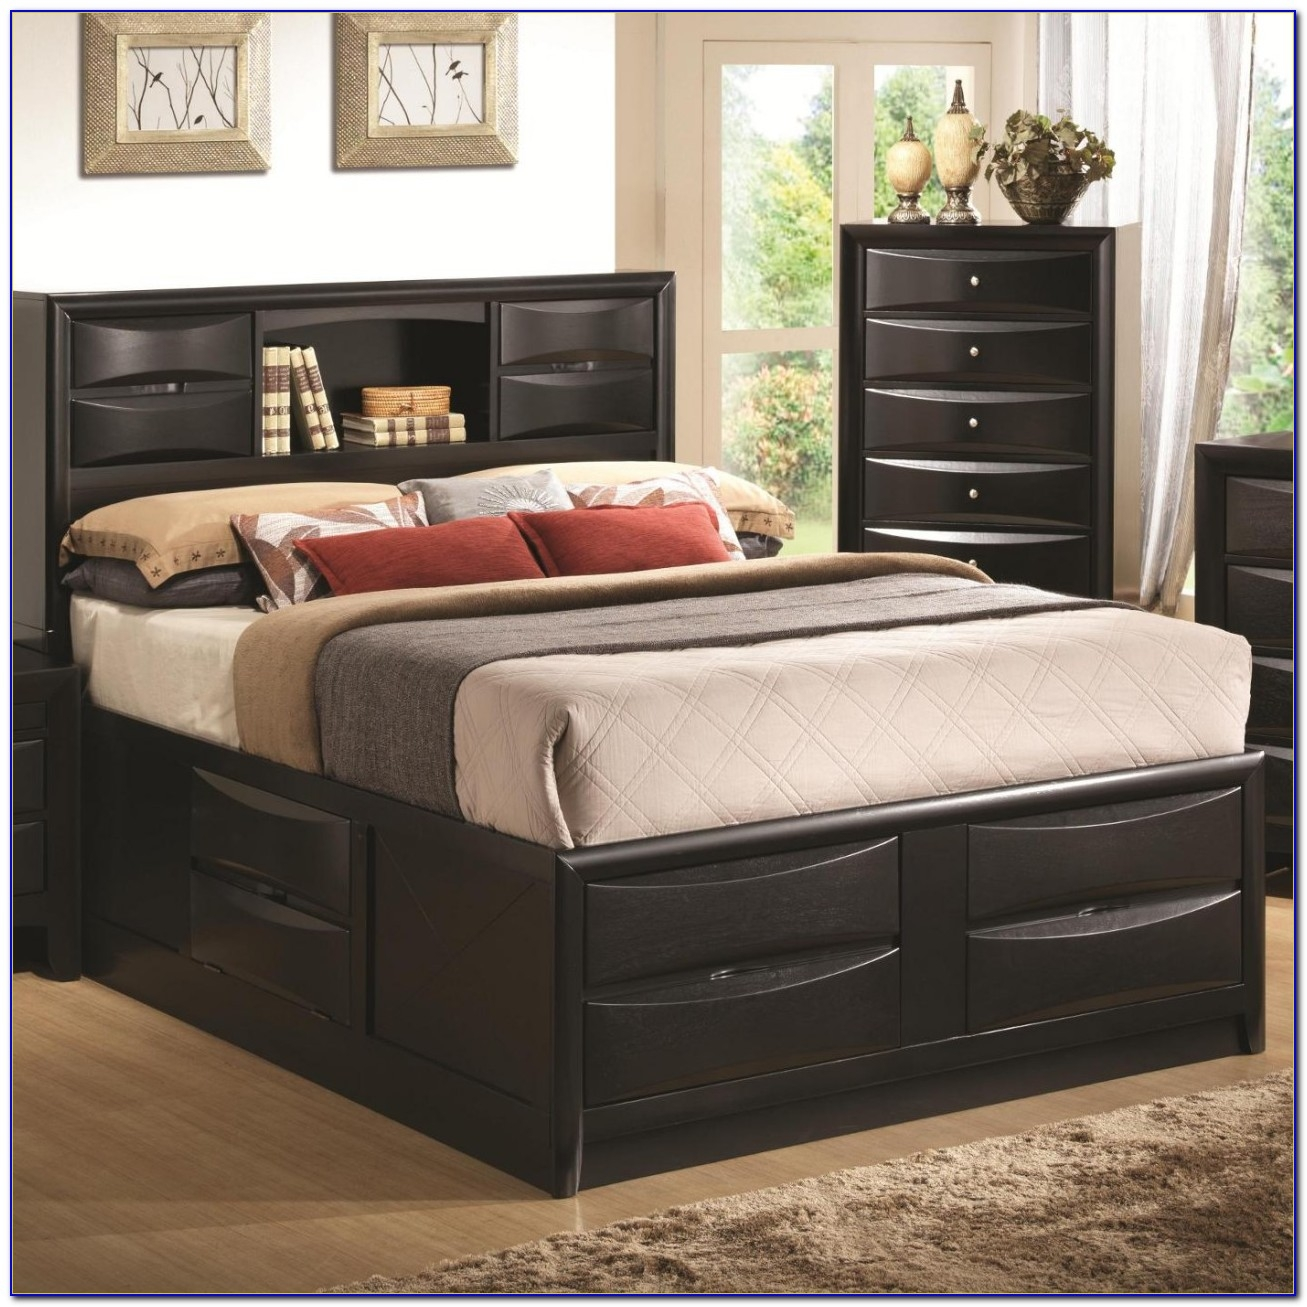 Headboard And Frame For Queen Size Bed